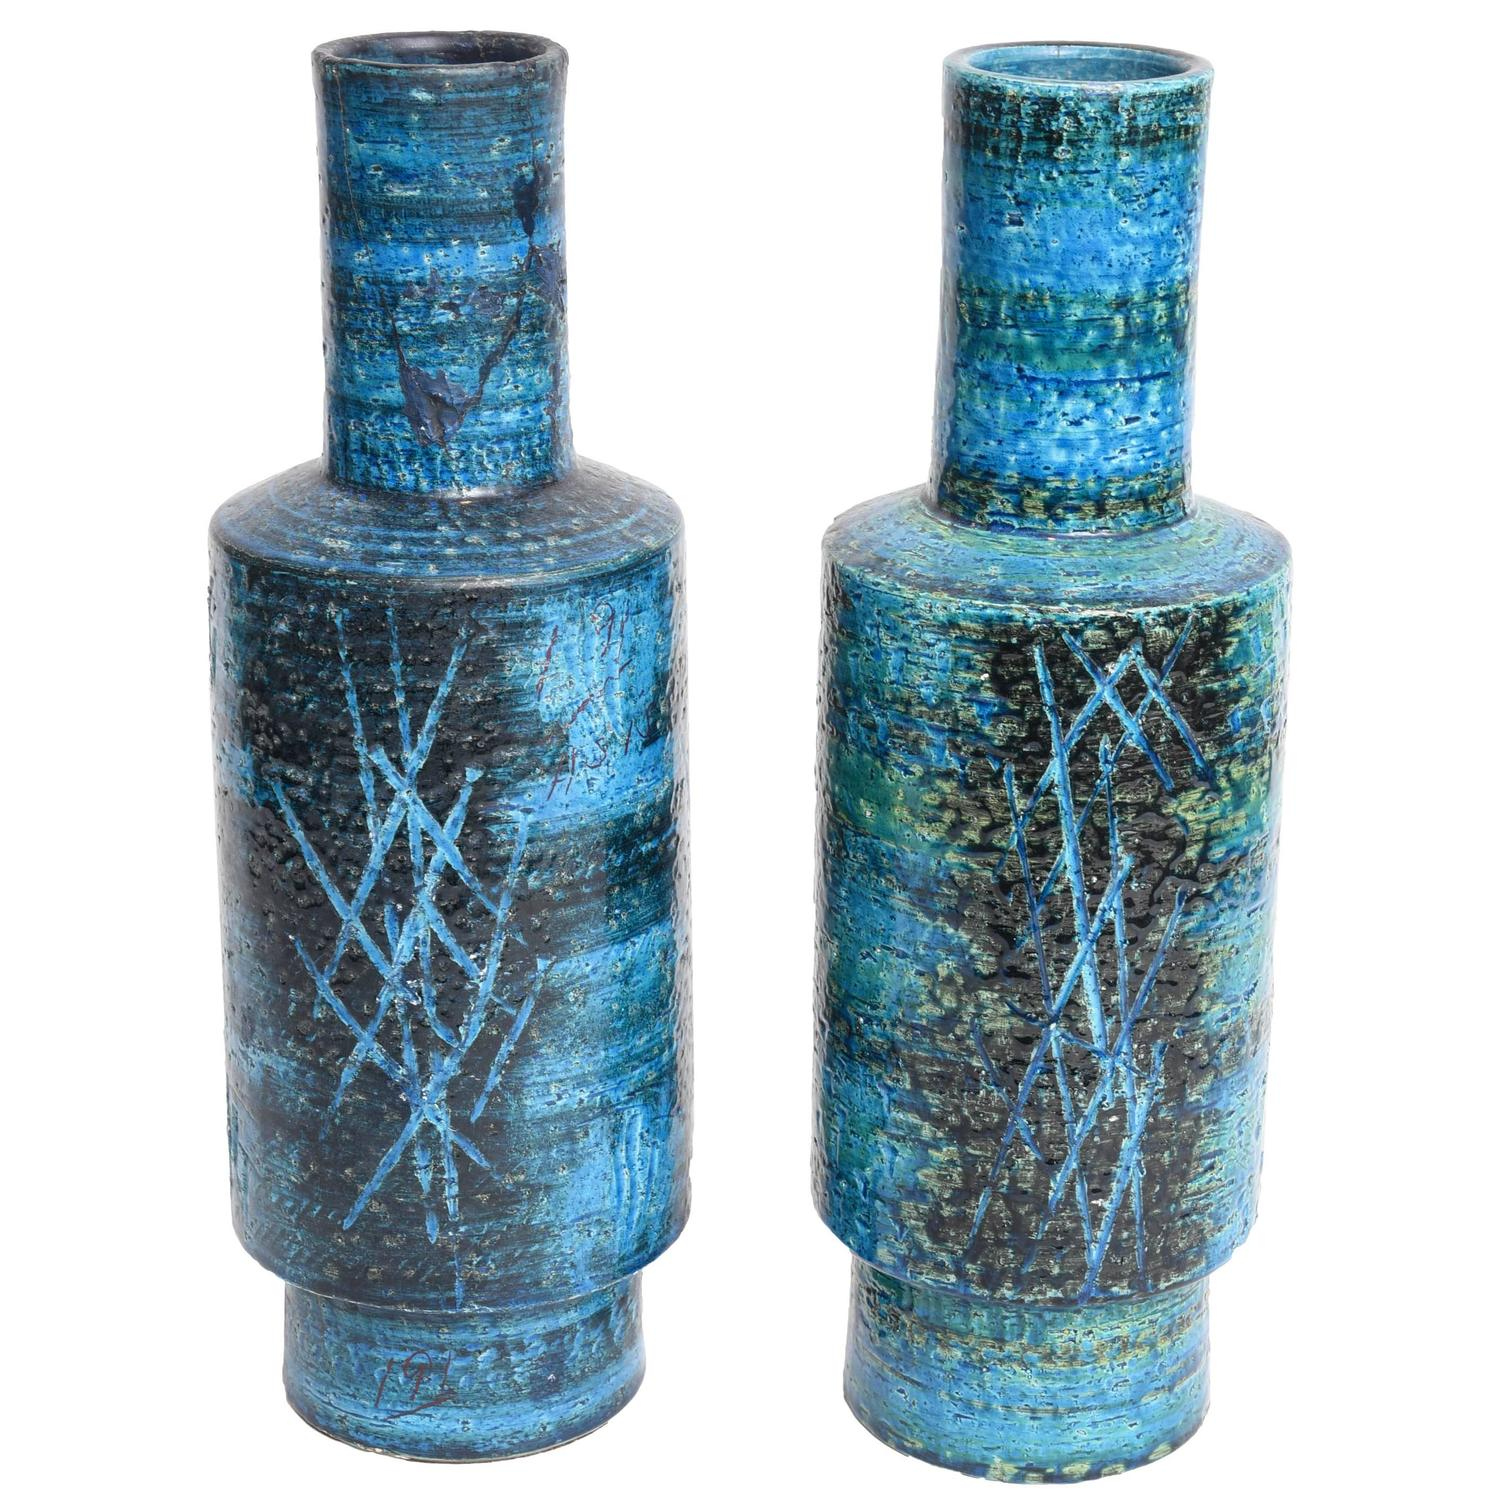 Pair of brass vases by revell ware 1960s stamped for sale at 1stdibs rare pair of blue bitossi vases by aldo londi for raymor italy 1960s reviewsmspy